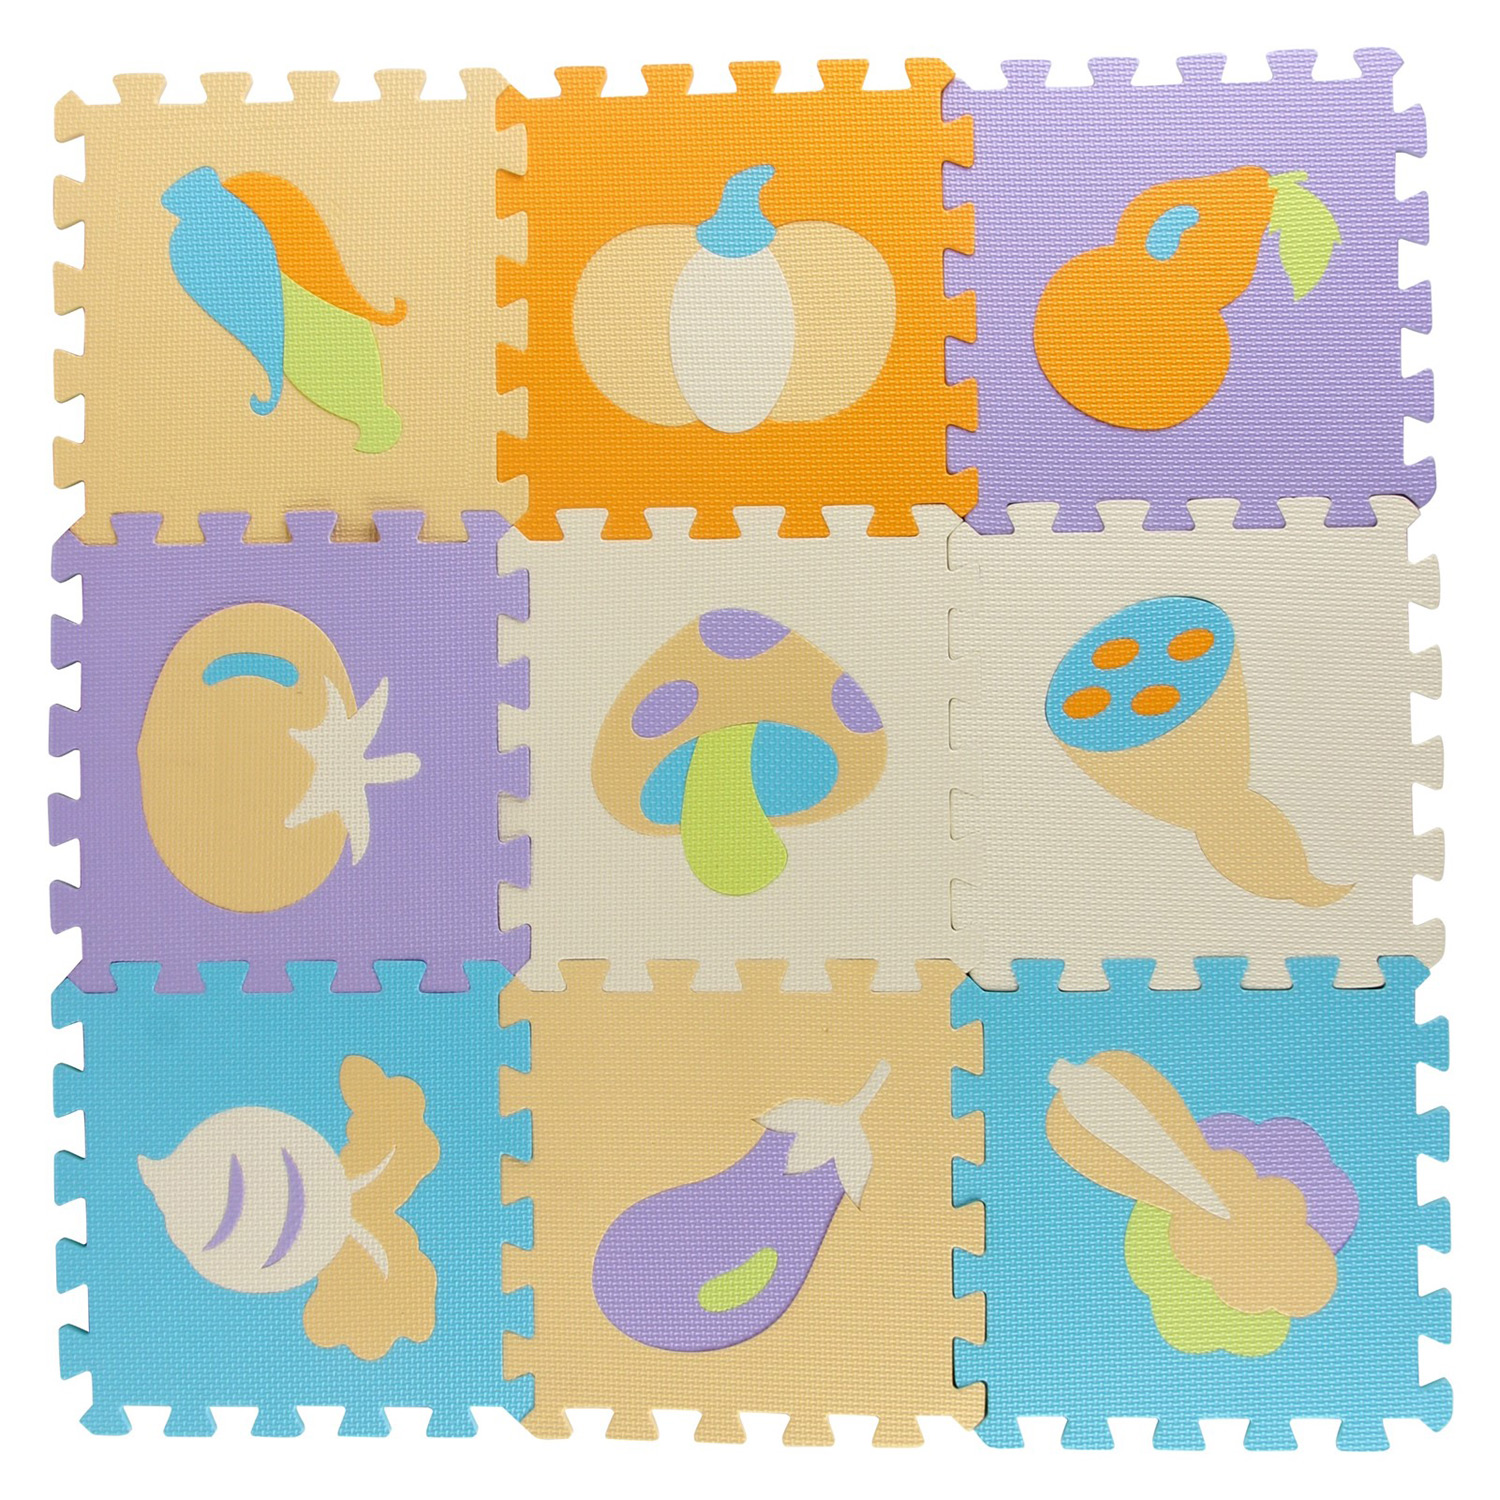 Kids 9 Piece Play Mat Foam Tiles With Different Vegetables And Colors Floor Puzzle Interlocking EVA Playroom Building Construction Toys Creative Imagination Perfect Gift For Boys And Girls